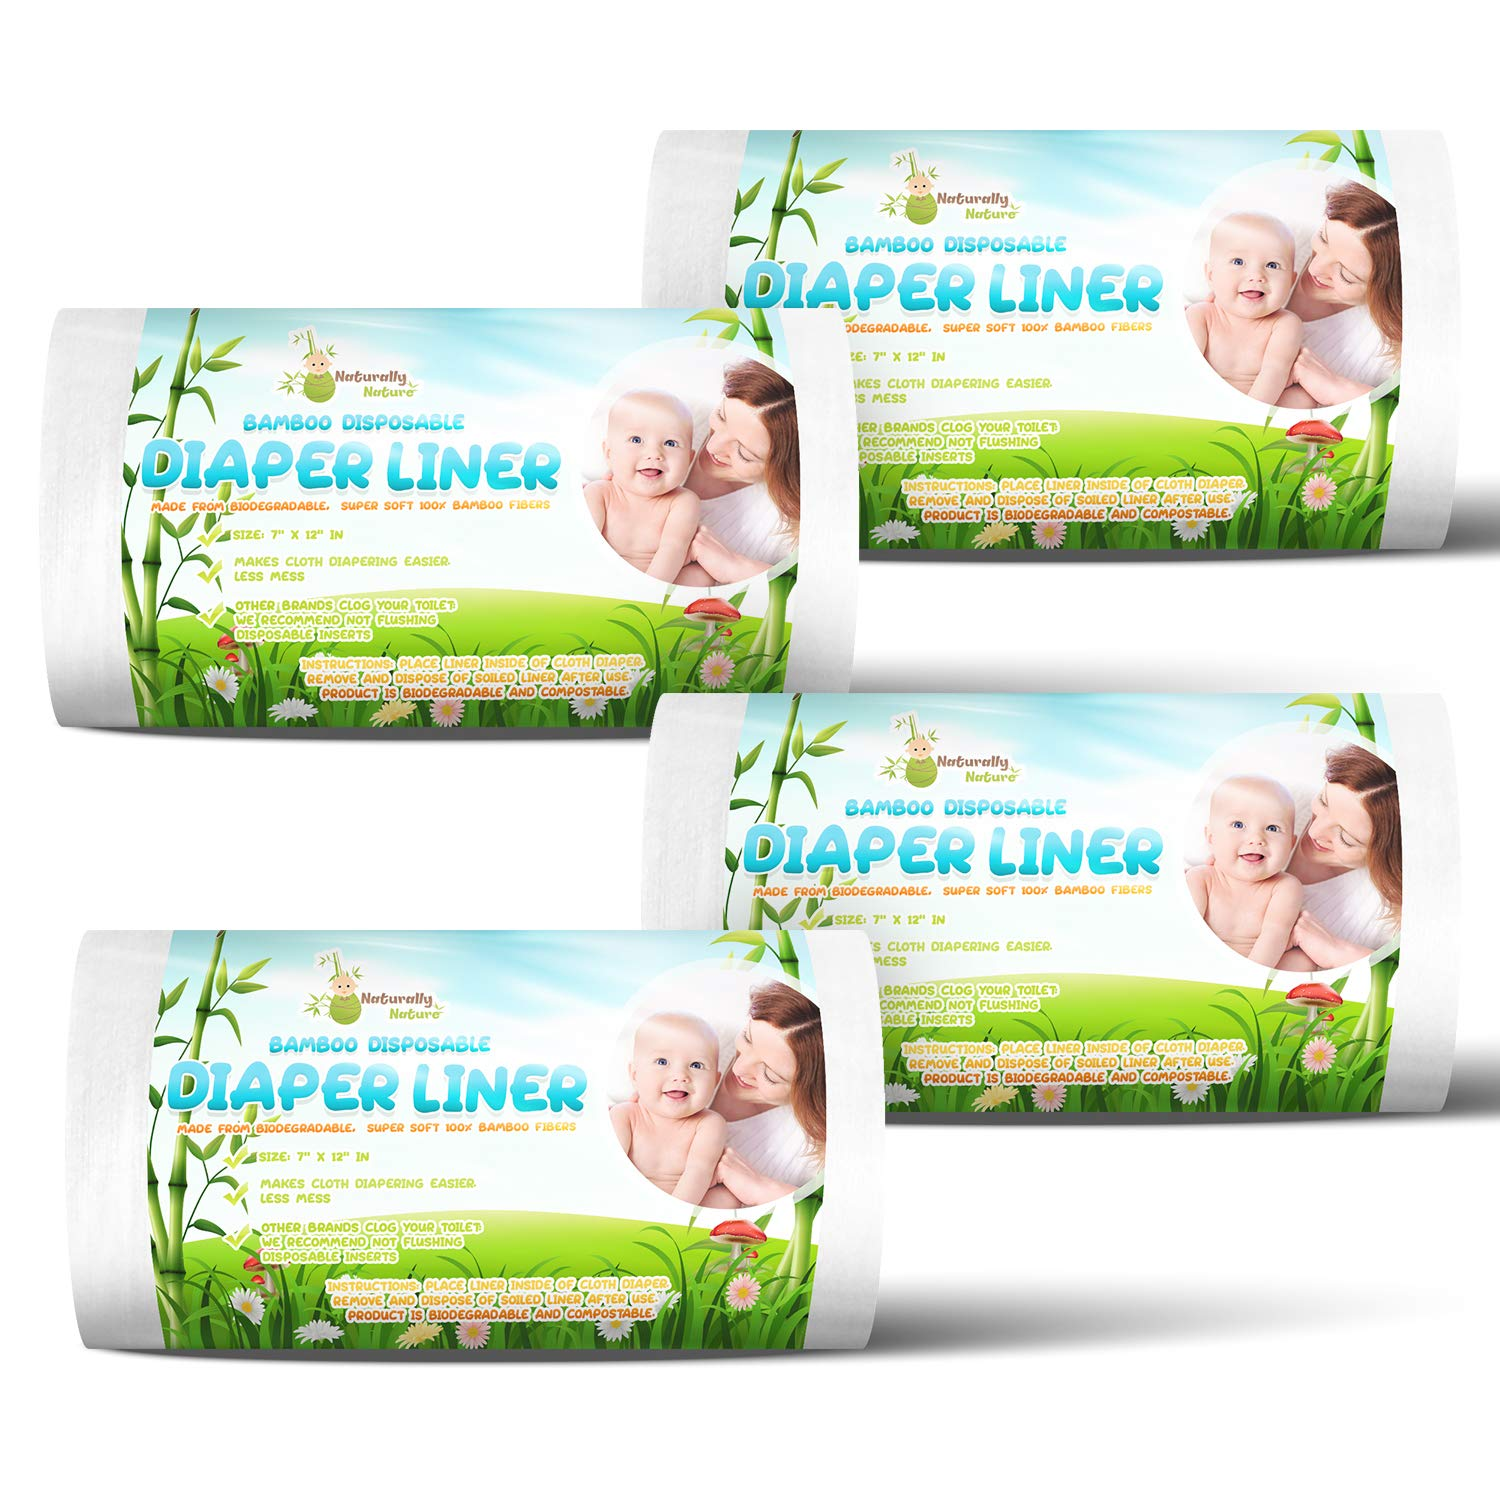 Naturally Natures Bamboo Diaper Liners 400 Sheets (4 Pack) Gentle and Soft, Chlorine and Dye-Free, Unscented, Biodegradable Inserts (Set of 4) 400 Liners by Naturally Nature